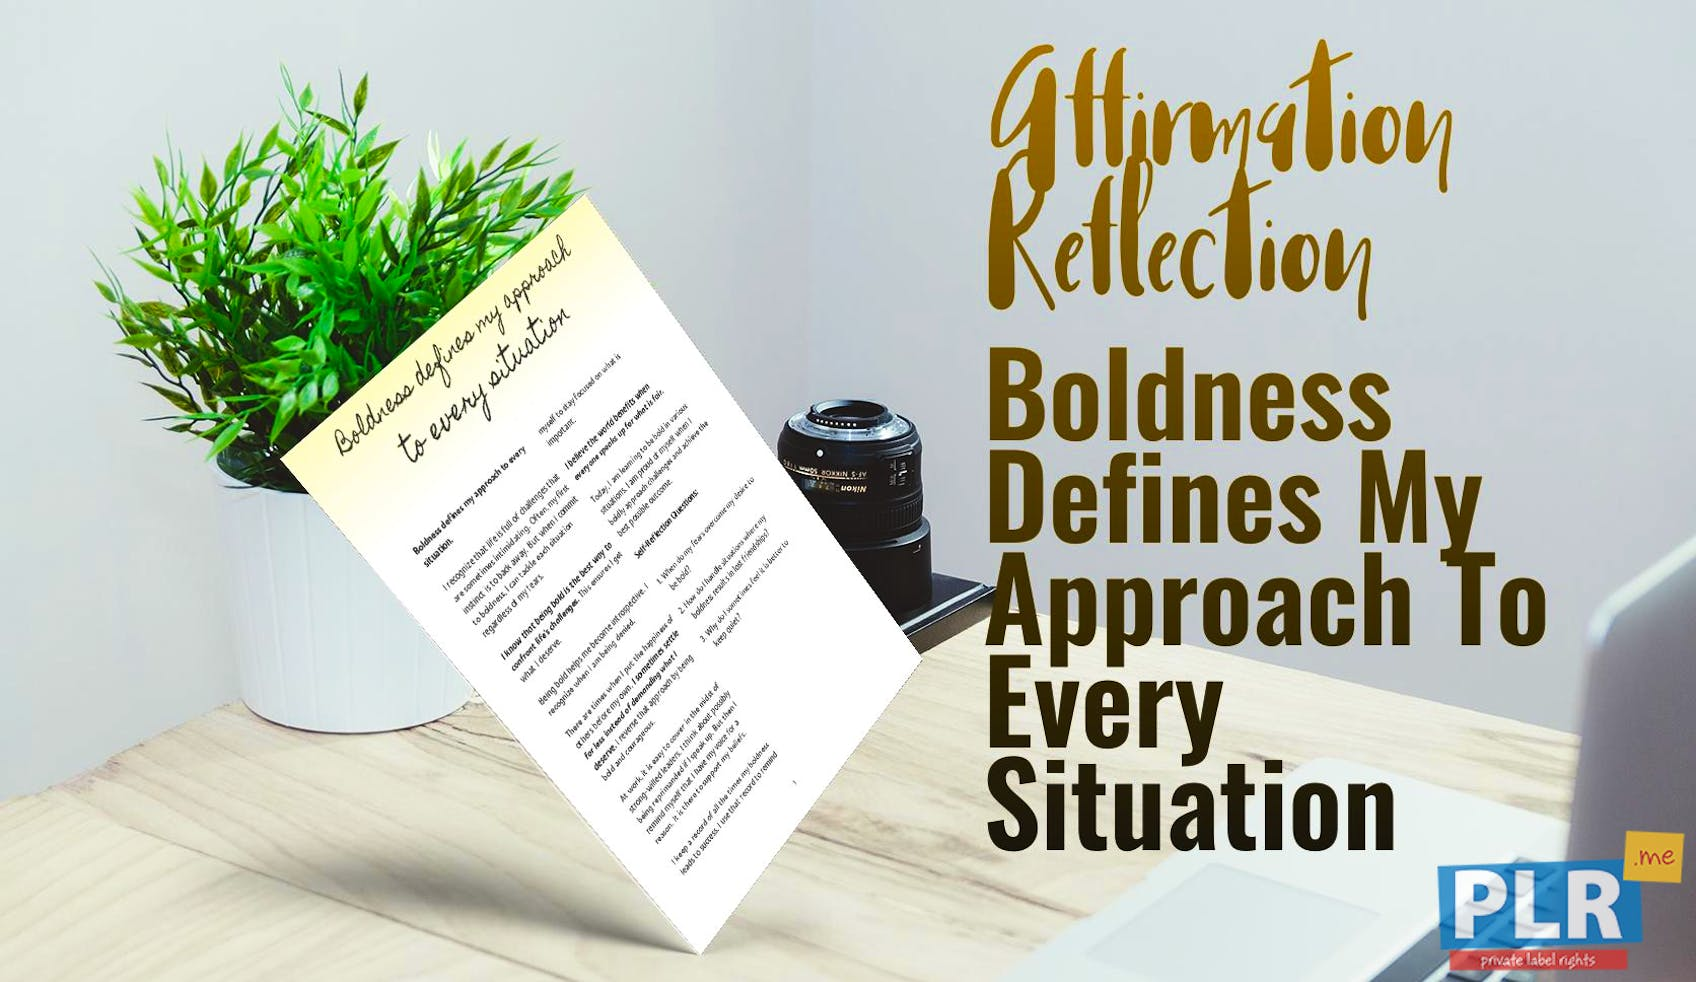 Boldness Defines My Approach To Every Situation